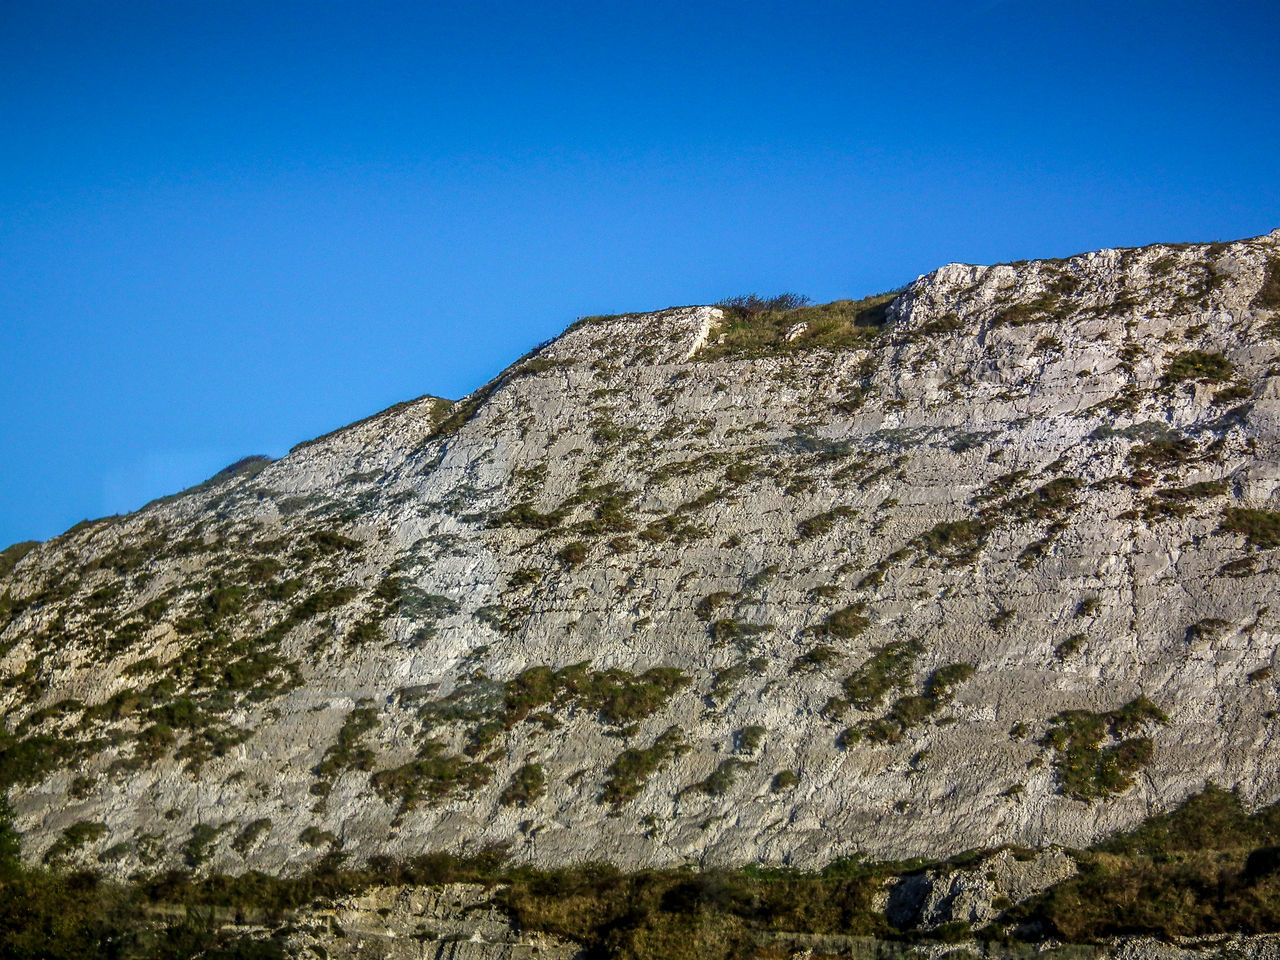 Beauty In Nature Berg Blue Clear Sky Day Dover England Inghilterra Low Angle View Montagna Mountain Mountains Nature No People Outdoors Scenics Sky